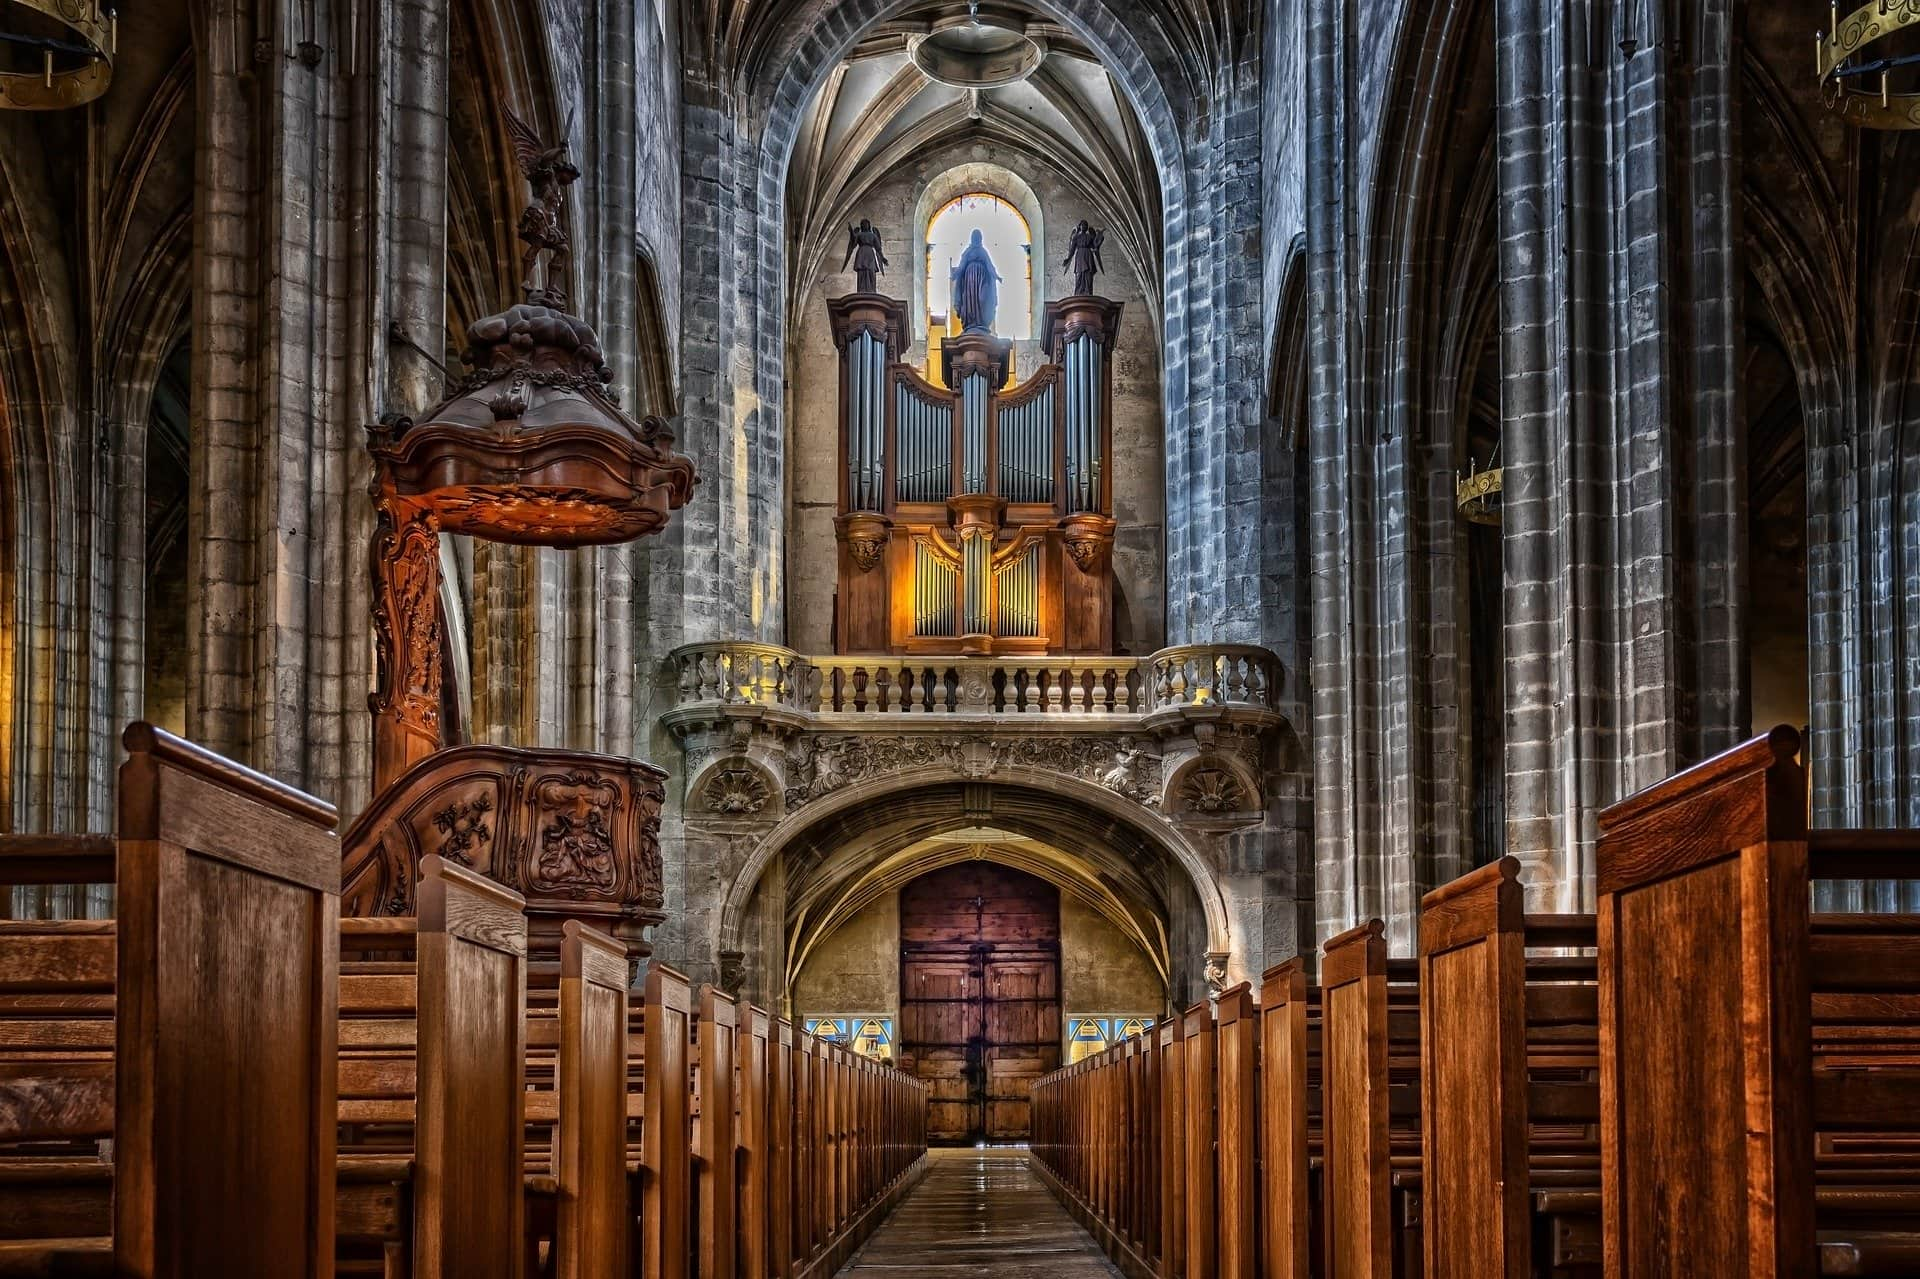 Cathedral-Organ-Creativity, Combinatorics & Patterns-Nancy Hillis MD and Bruce Sawhill PhD